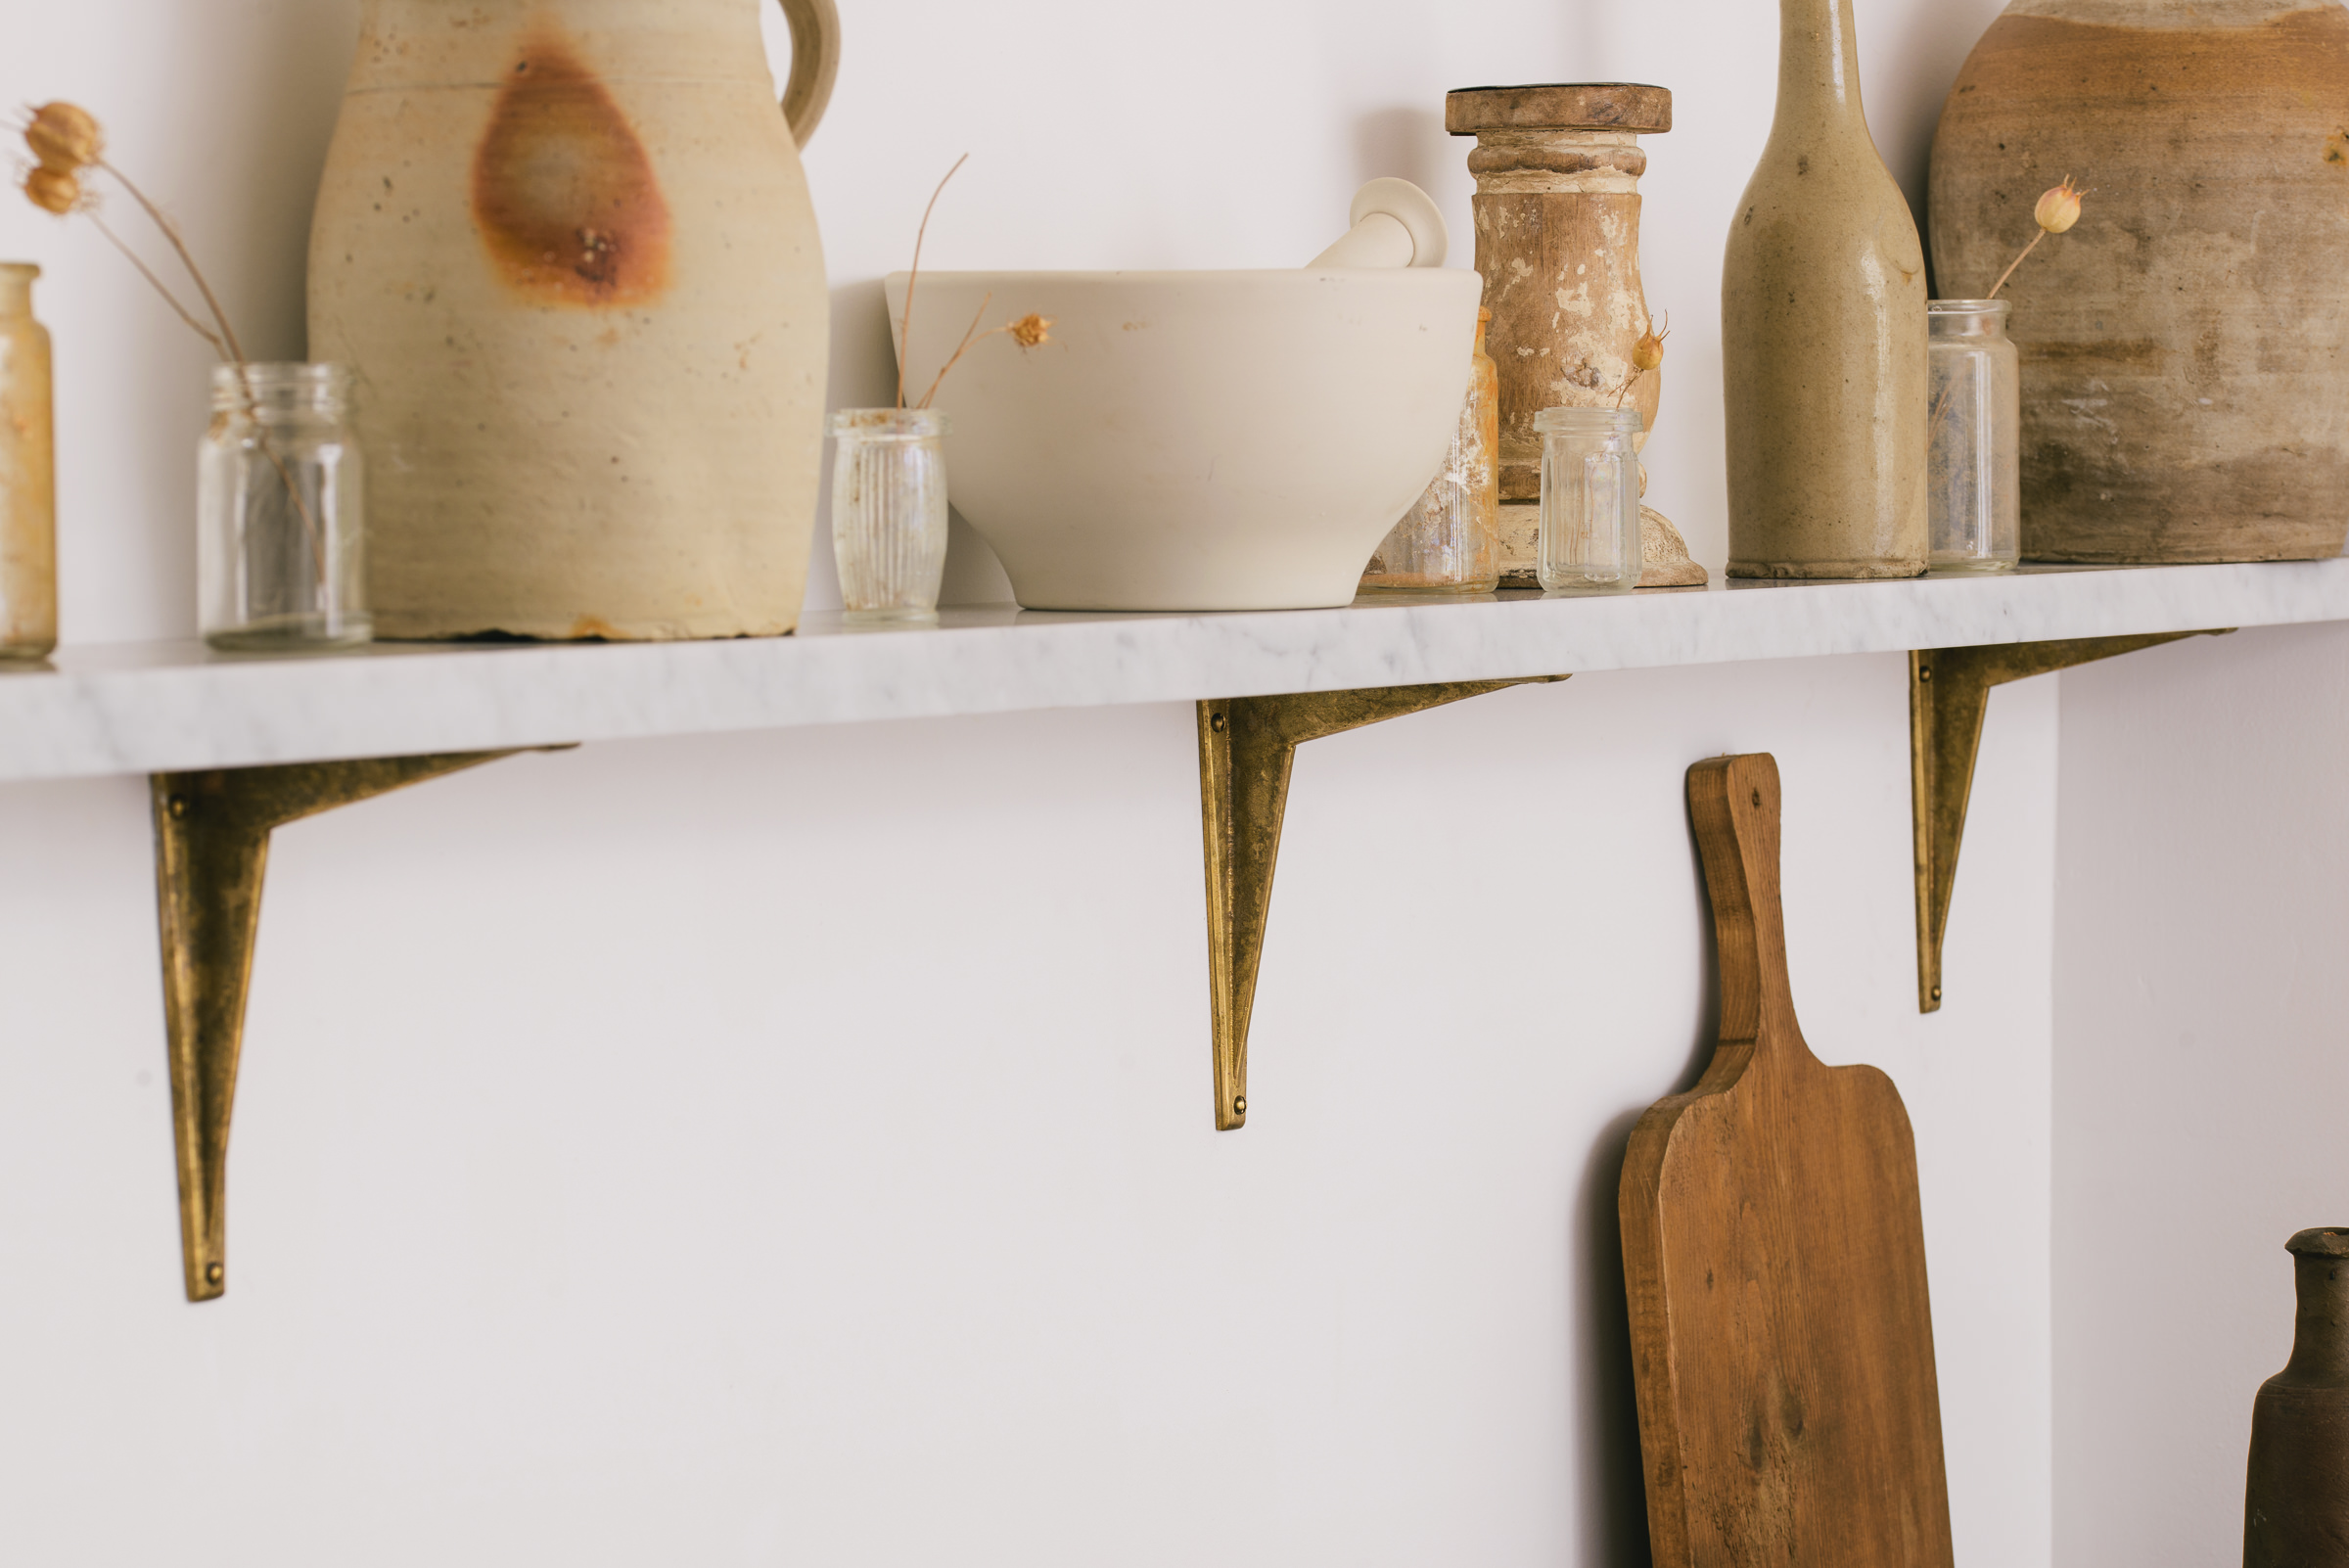 Our Aged Brass Shelf Brackets looking lovely in the Millhouse Scullery